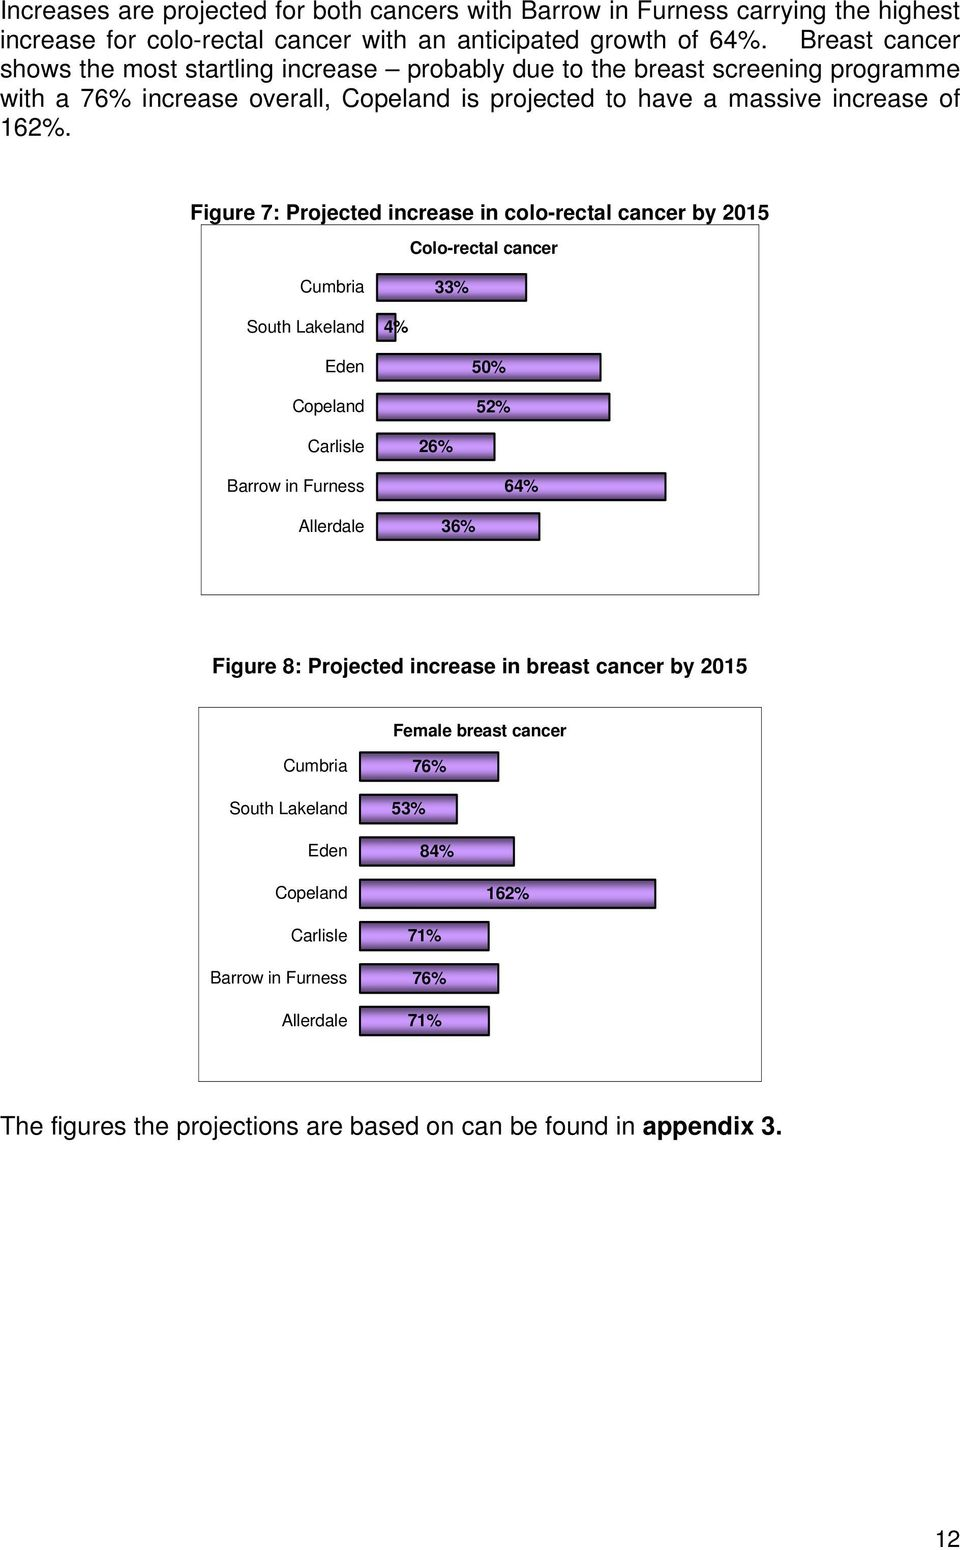 Figure 7: Projected increase in colo-rectal cancer by 2015 Colo-rectal cancer Cumbria 33% South Lakeland 4% Eden Copeland 50% 52% Carlisle 26% Barrow in Furness 64% Allerdale 36% -3% 17% 37% 57%